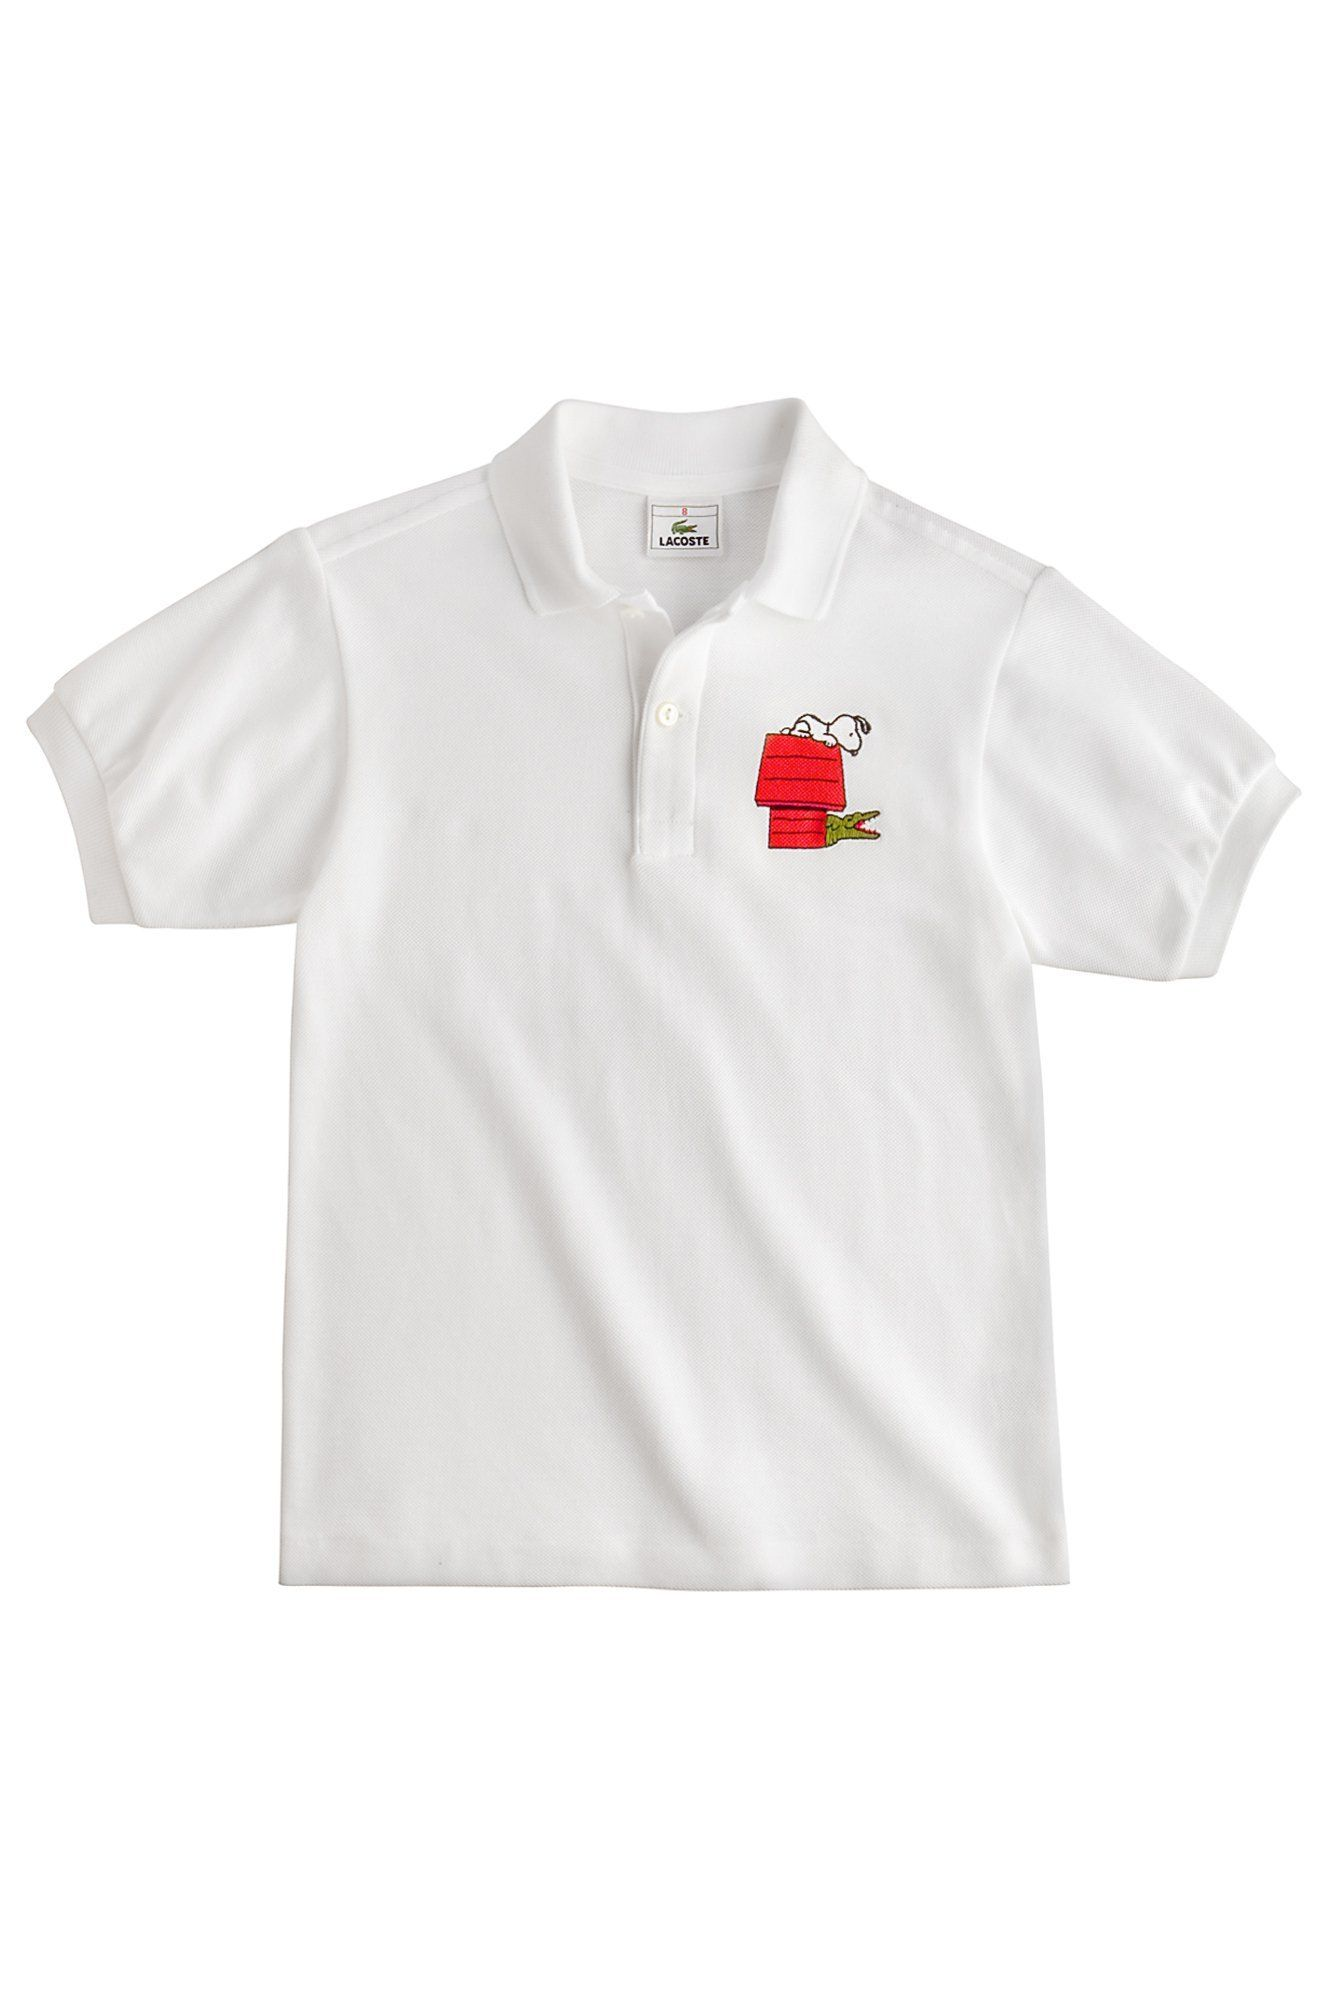 62b336a985 Lacoste Children s Peanuts Snoopy Polo   Boys